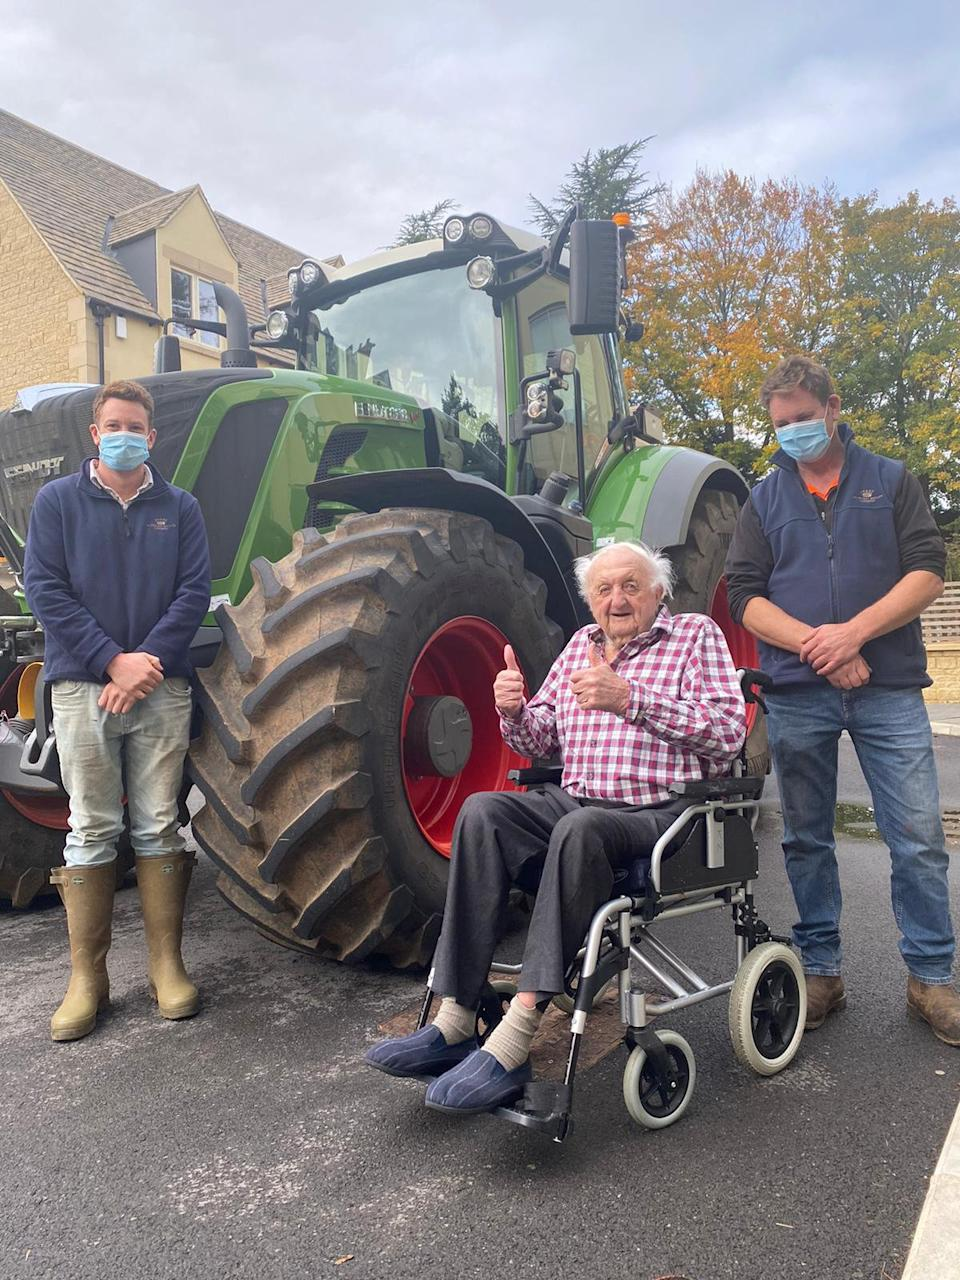 Frank, 94, and Margaret, 98, had their wish to see and sit on a combine harvester (swns)